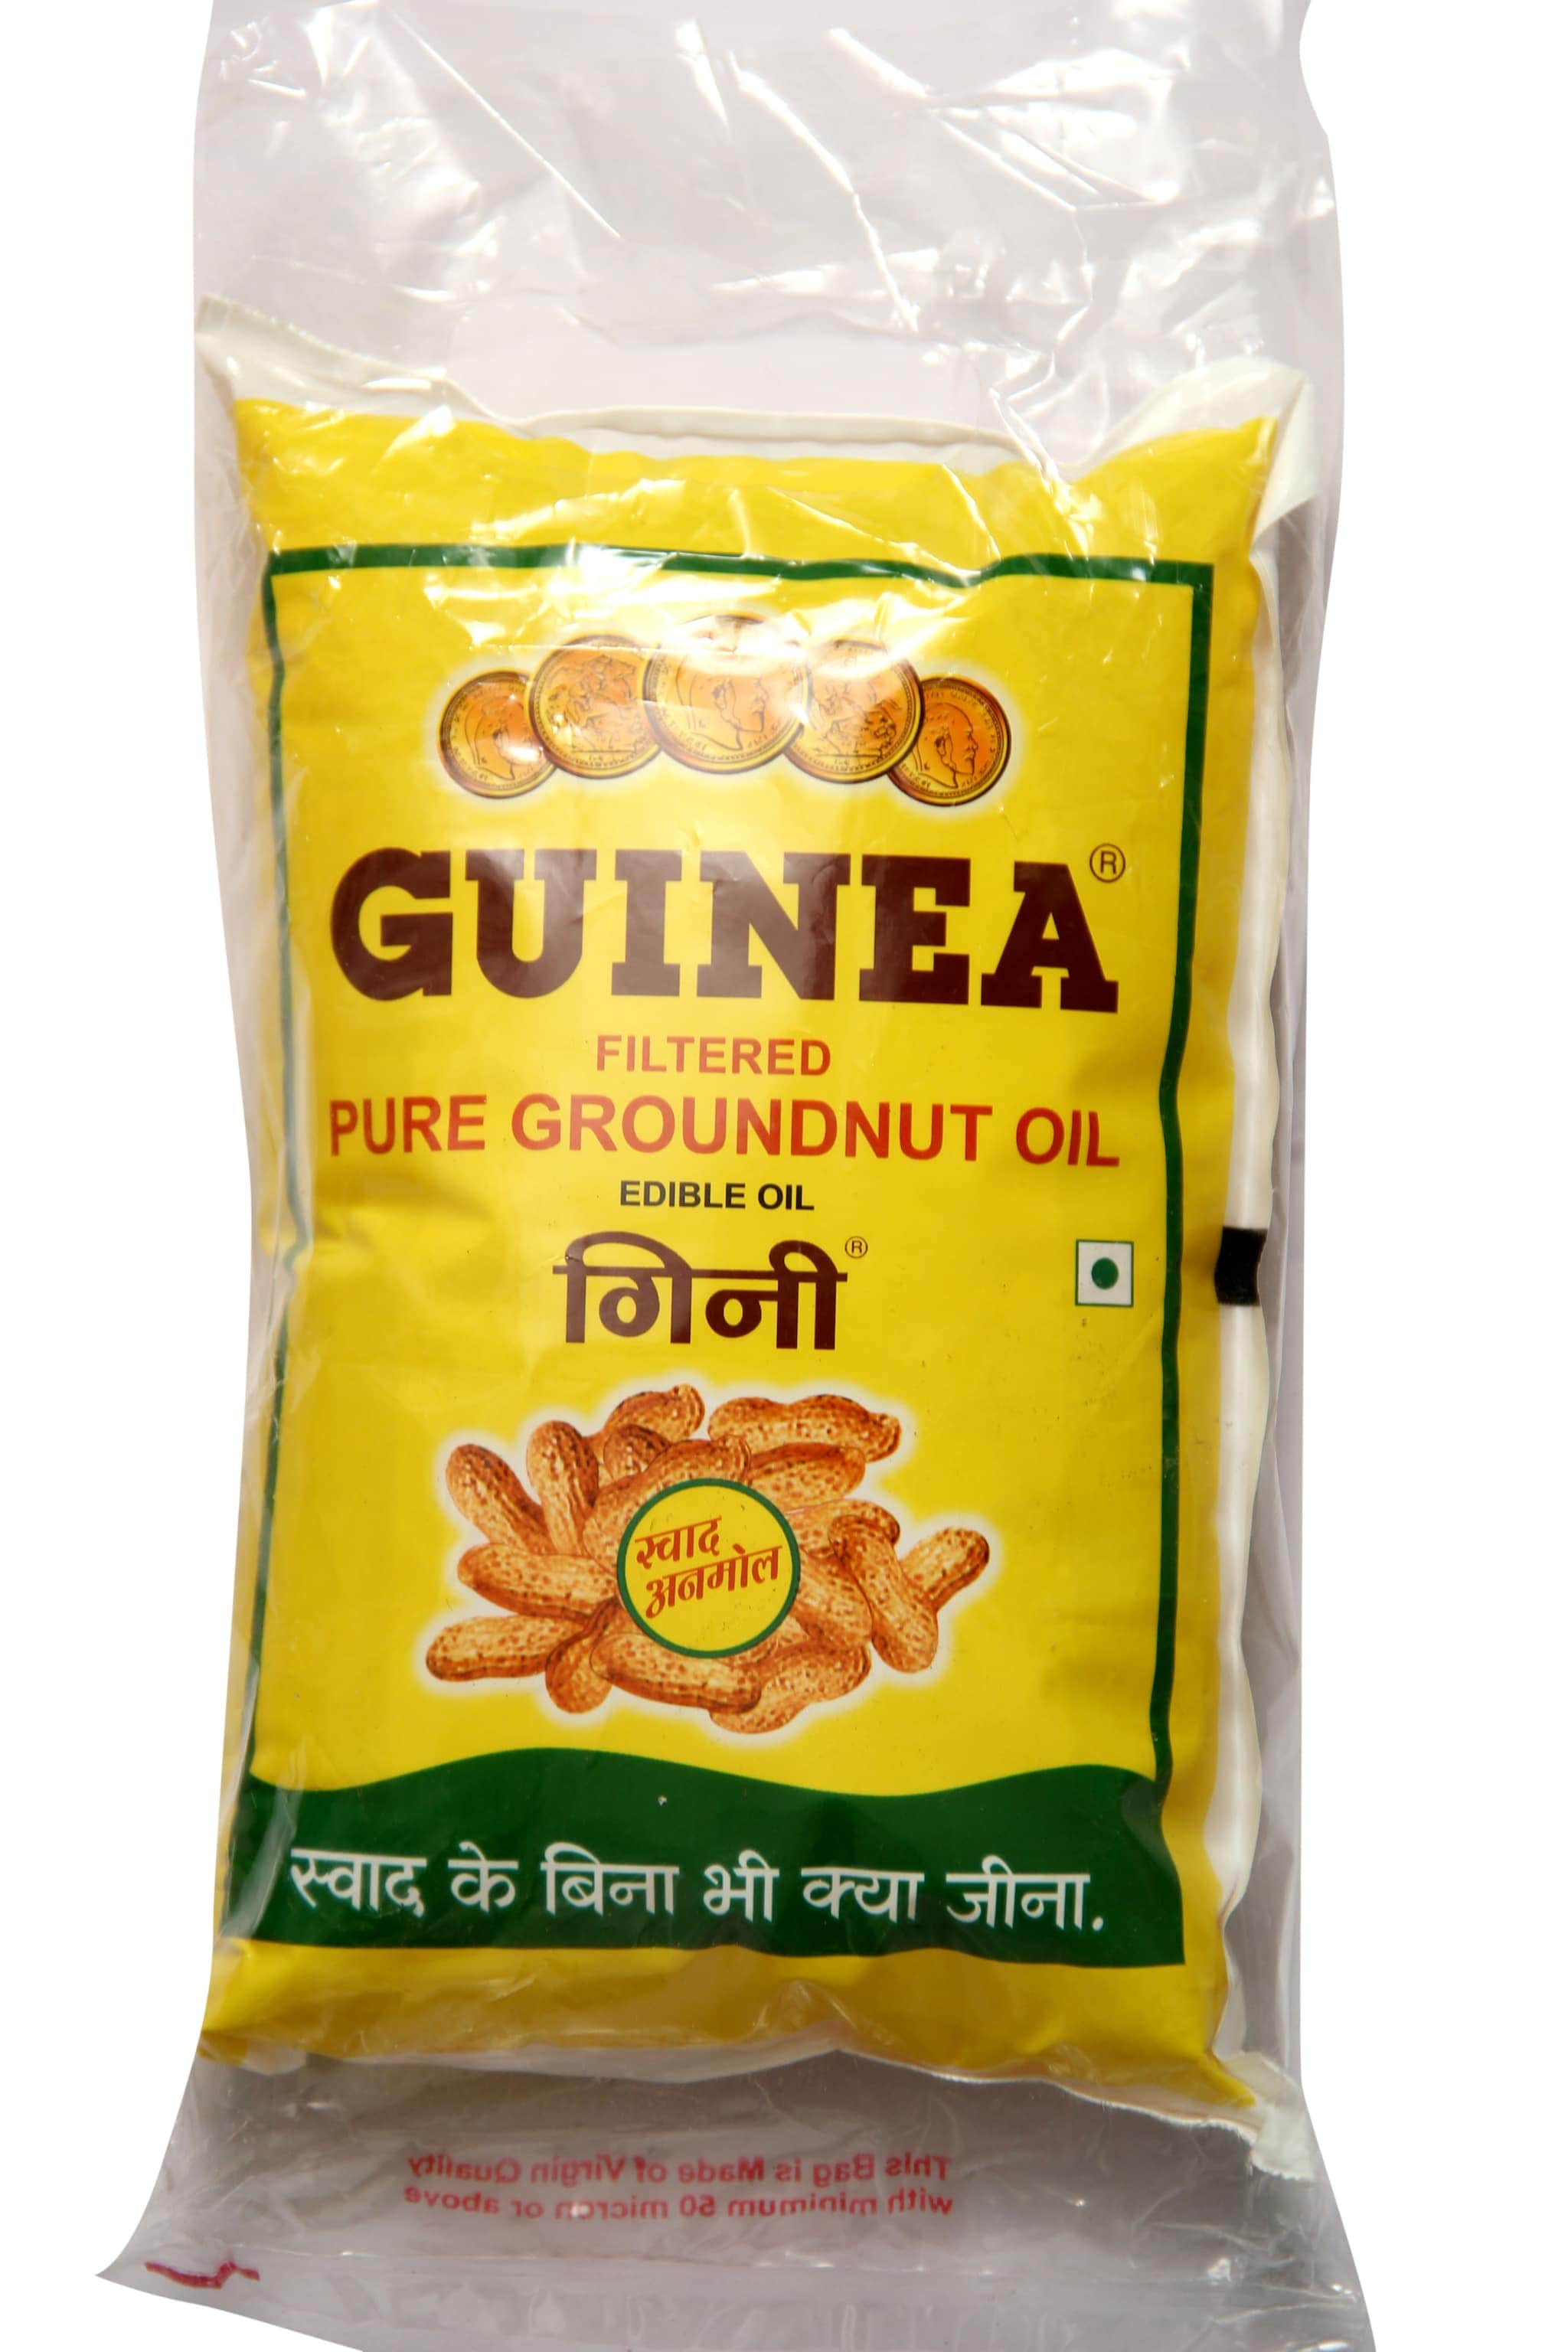 Guinea Filtered Pure GroundNut Oil